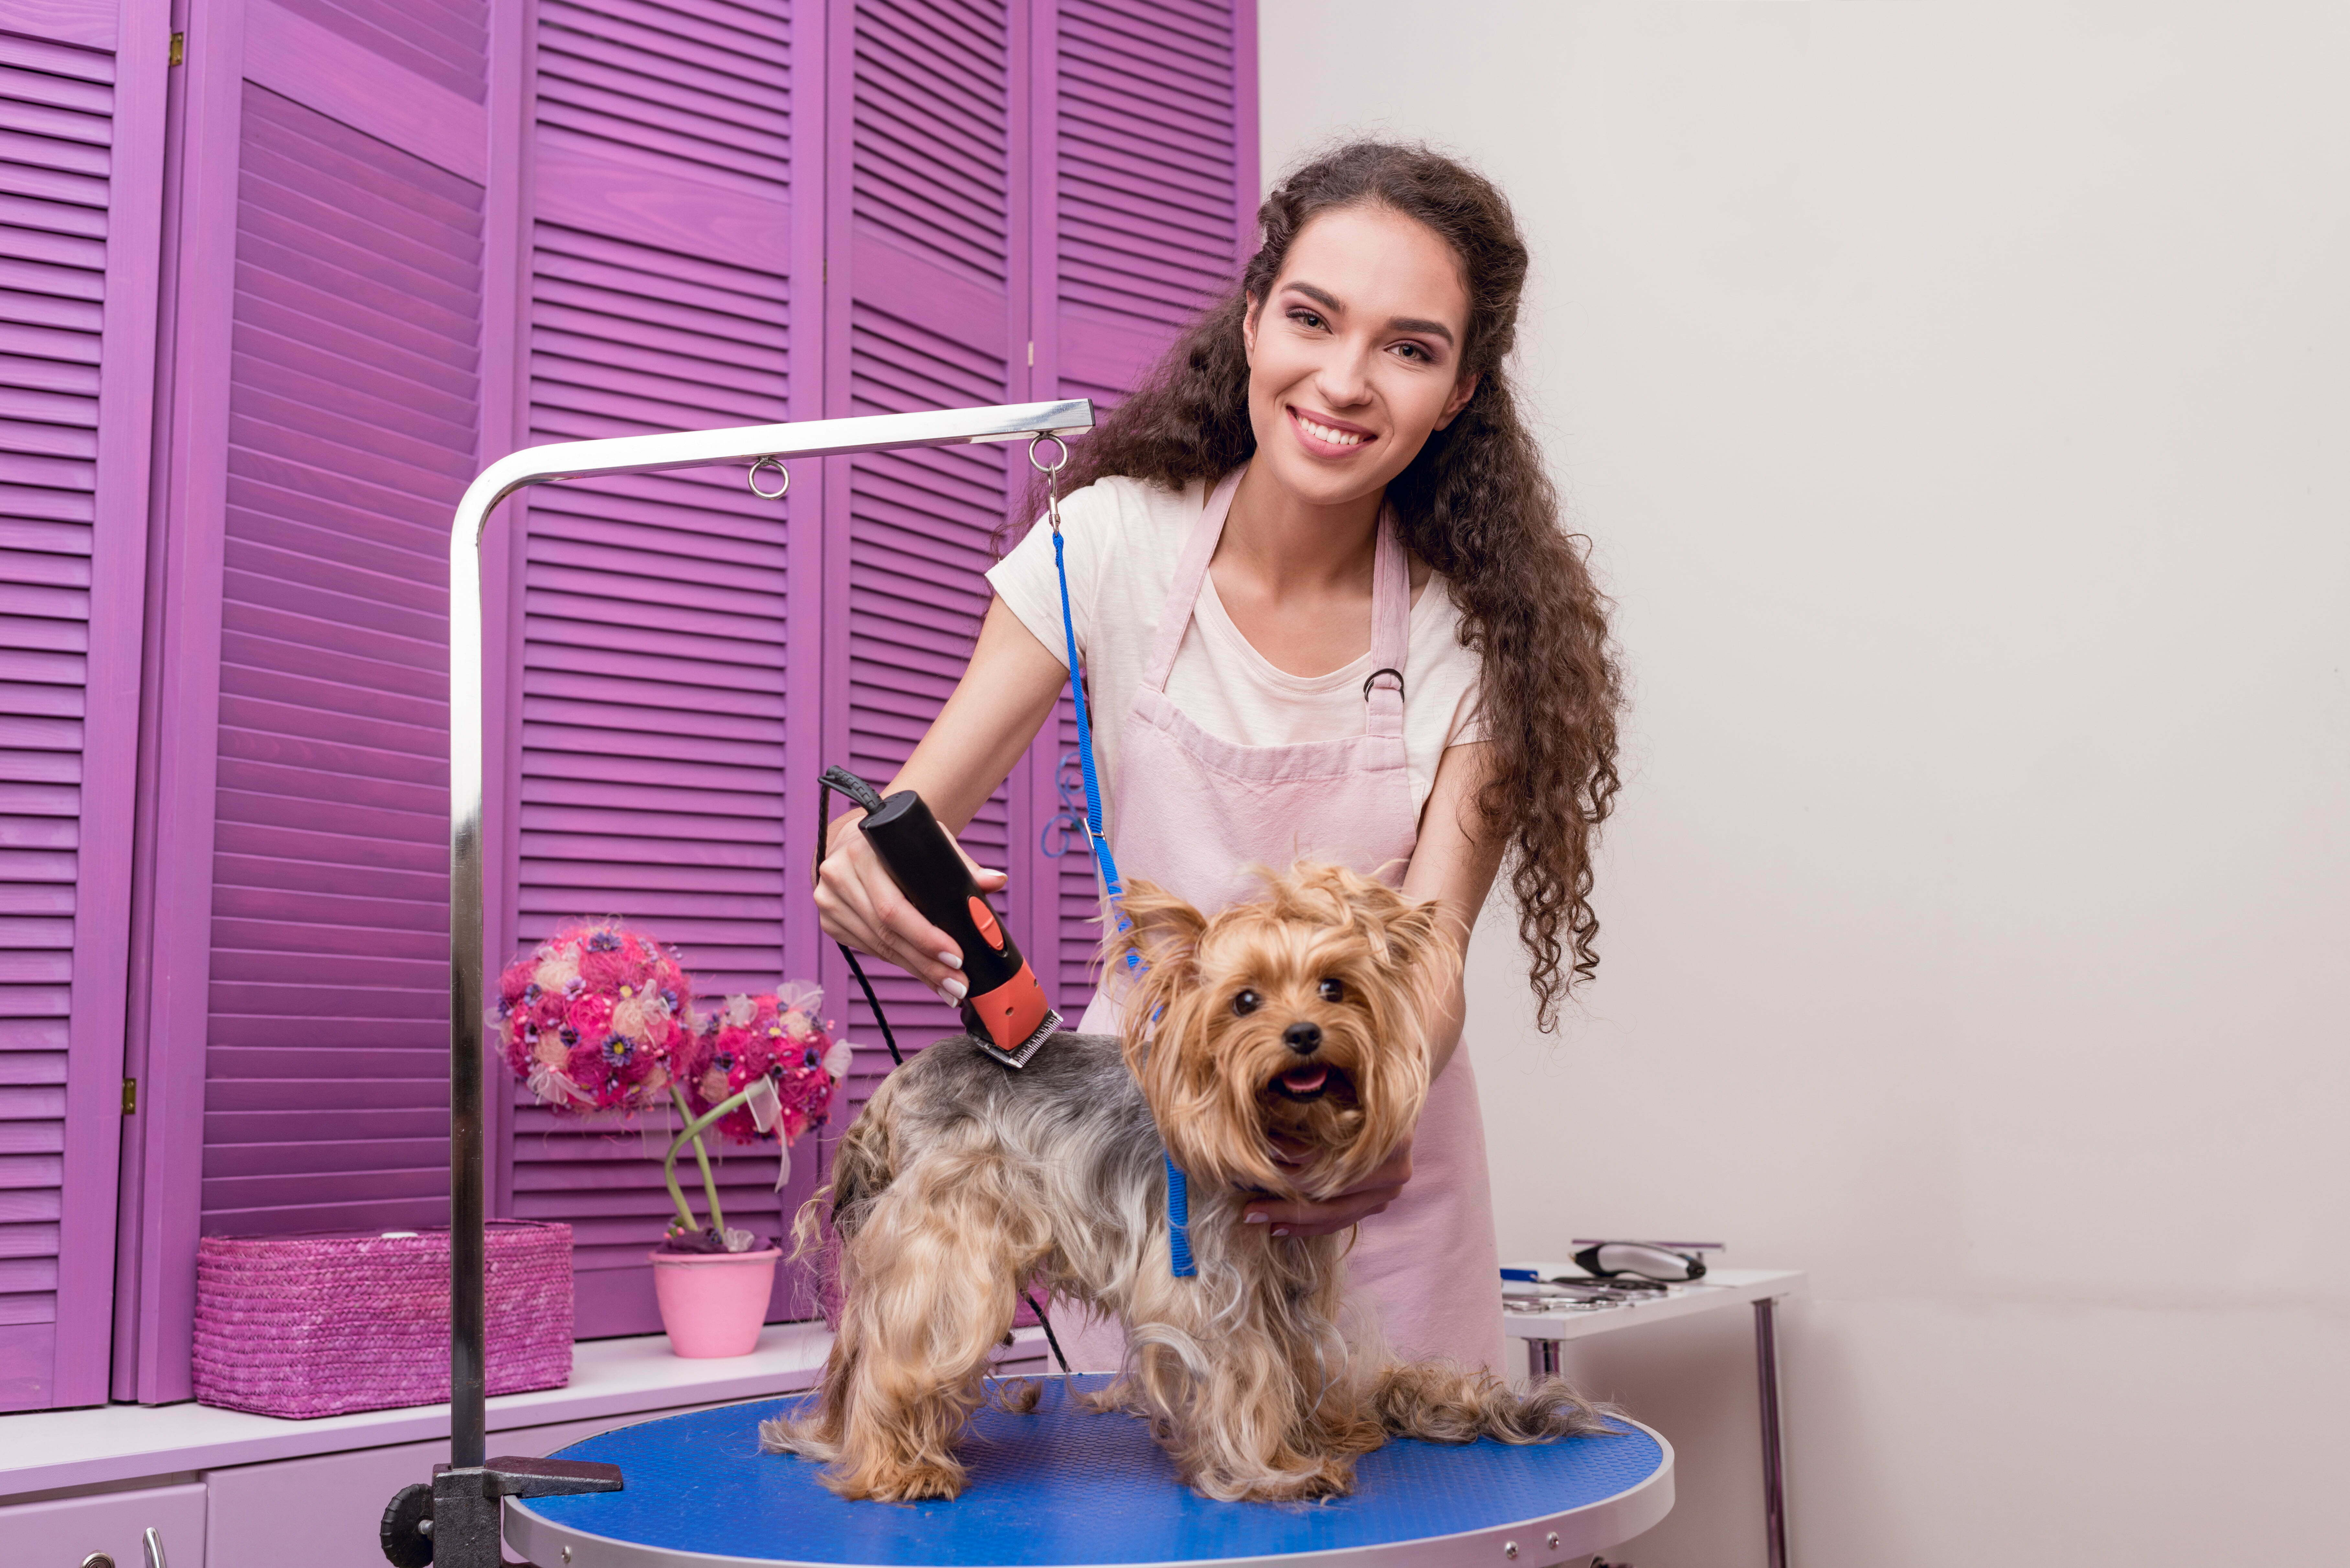 great pet groomer smiling and grooming small dog